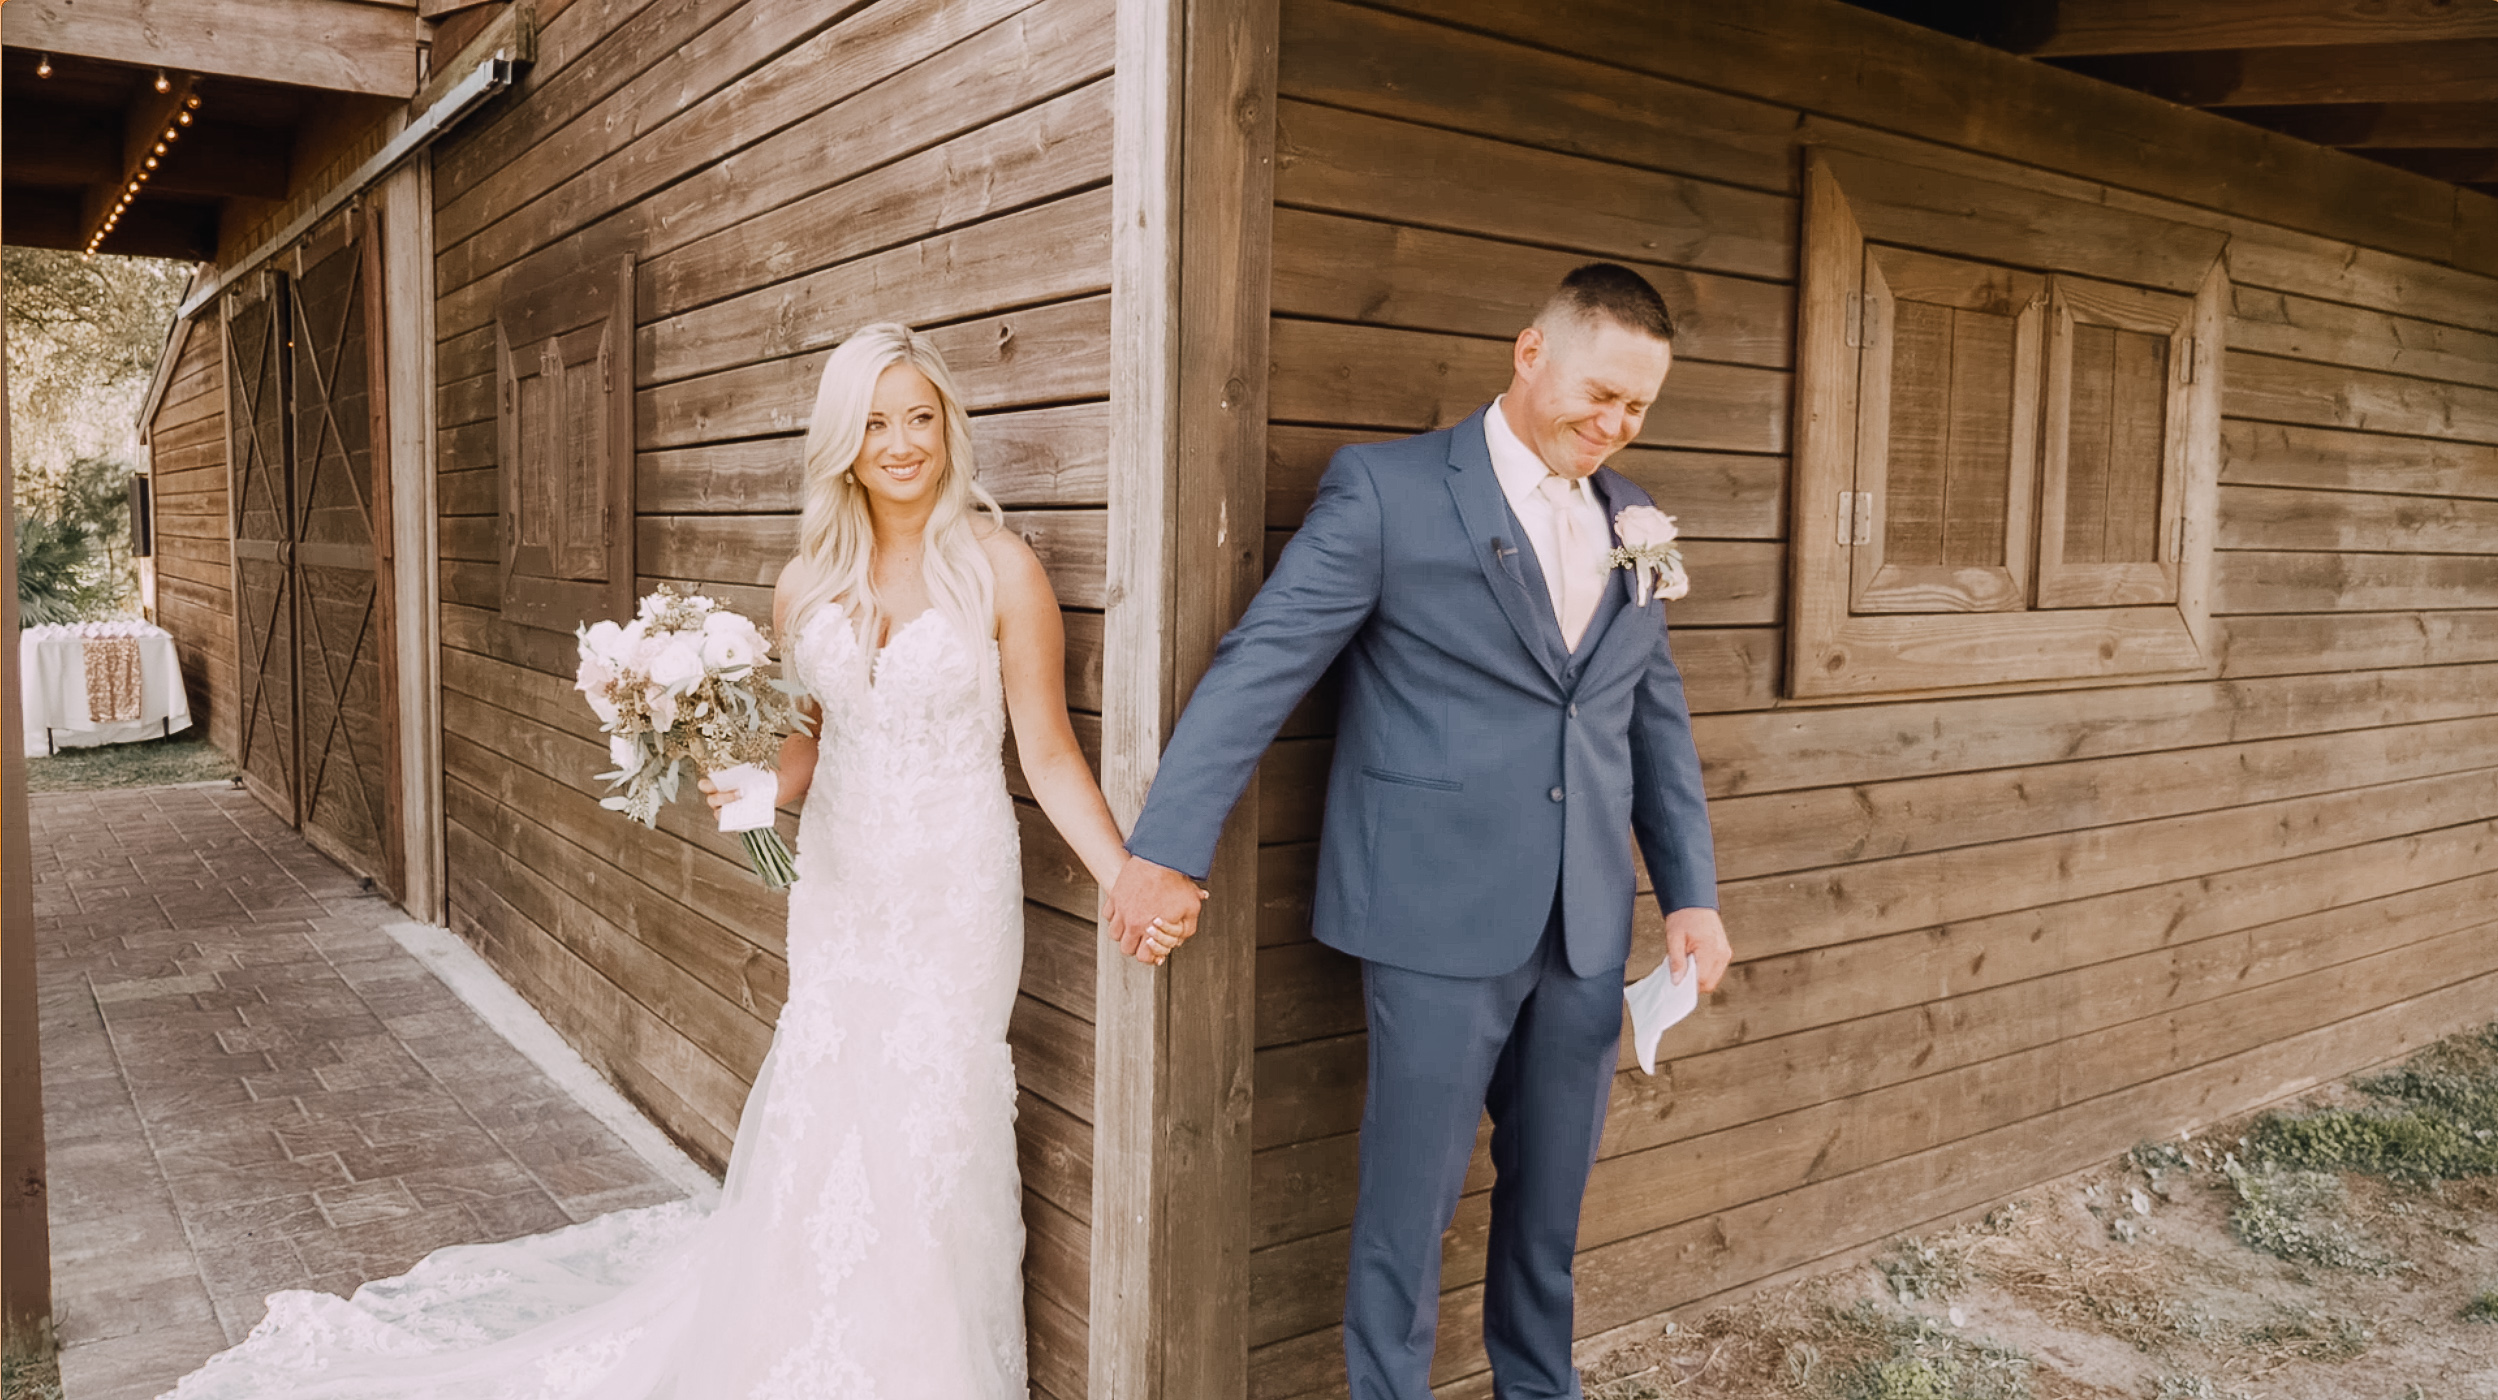 JOHN + VICTORIA - The wedding film of John and Victoria, captured at The Enchanting Barn in Osteen, FL.